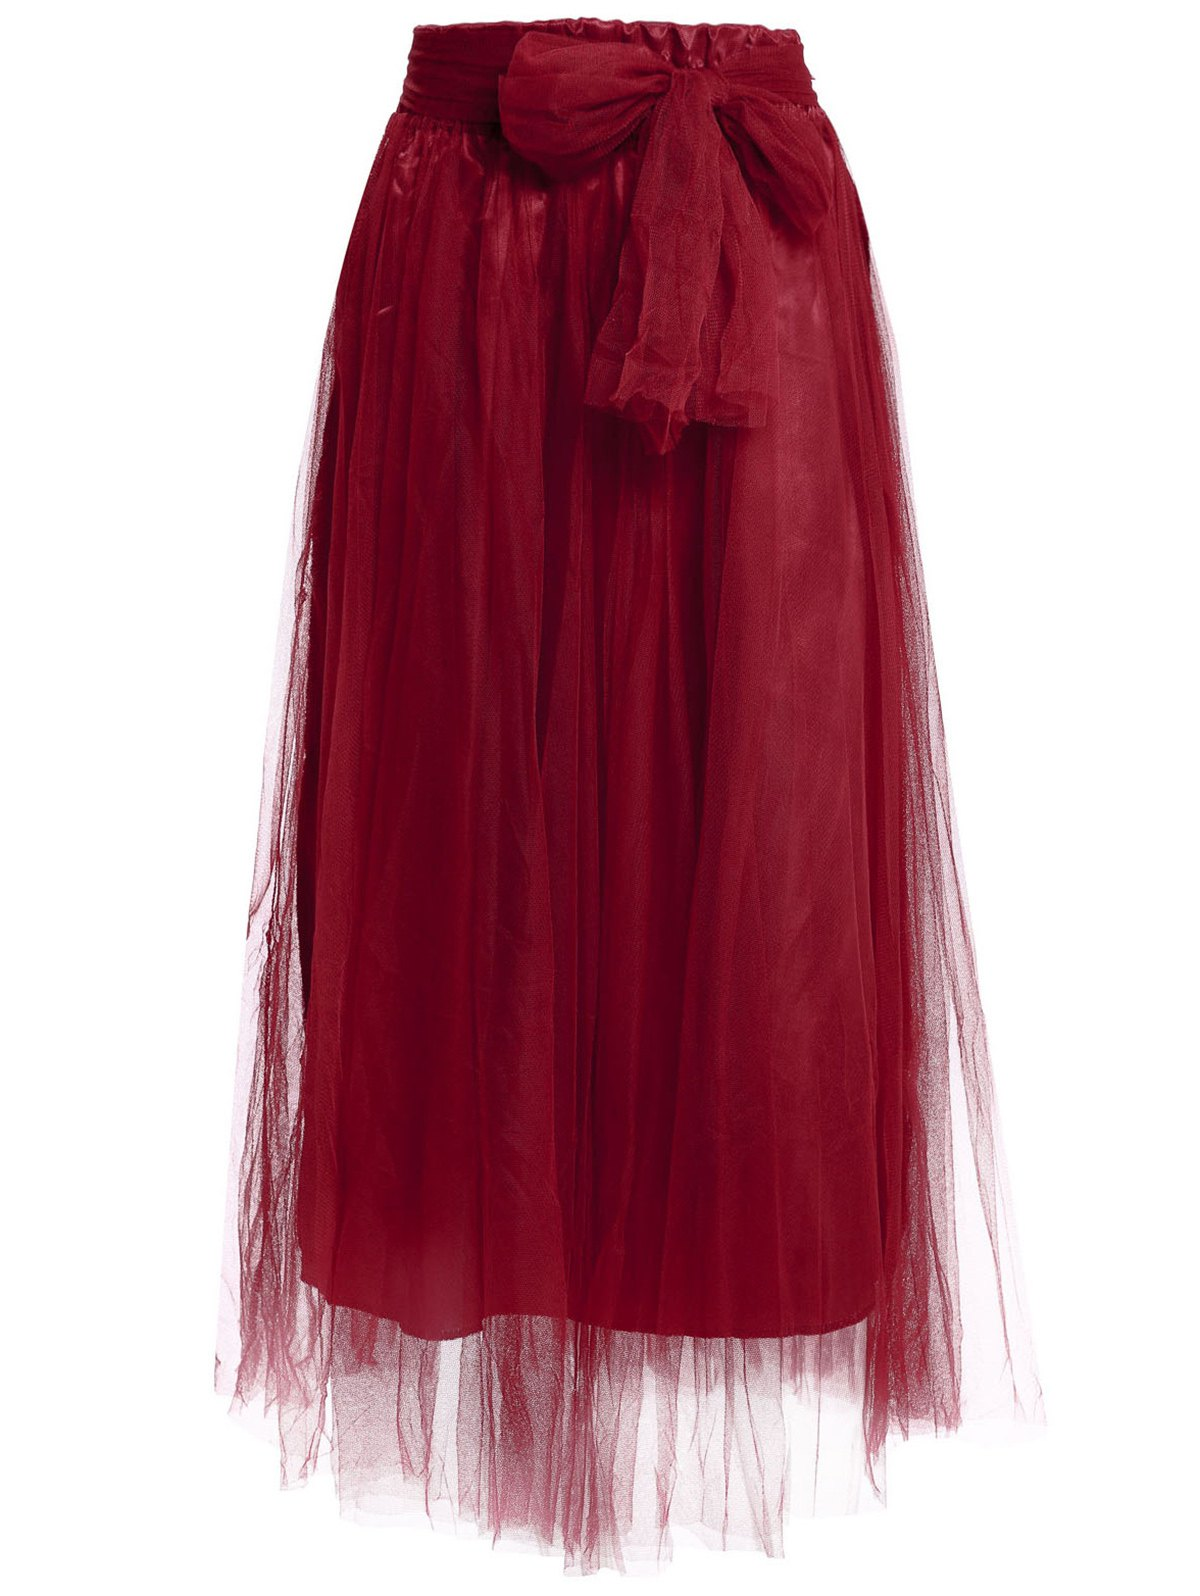 Stylish Solid Color Floor-Length High-Waisted Skirt For Women - WINE RED ONE SIZE